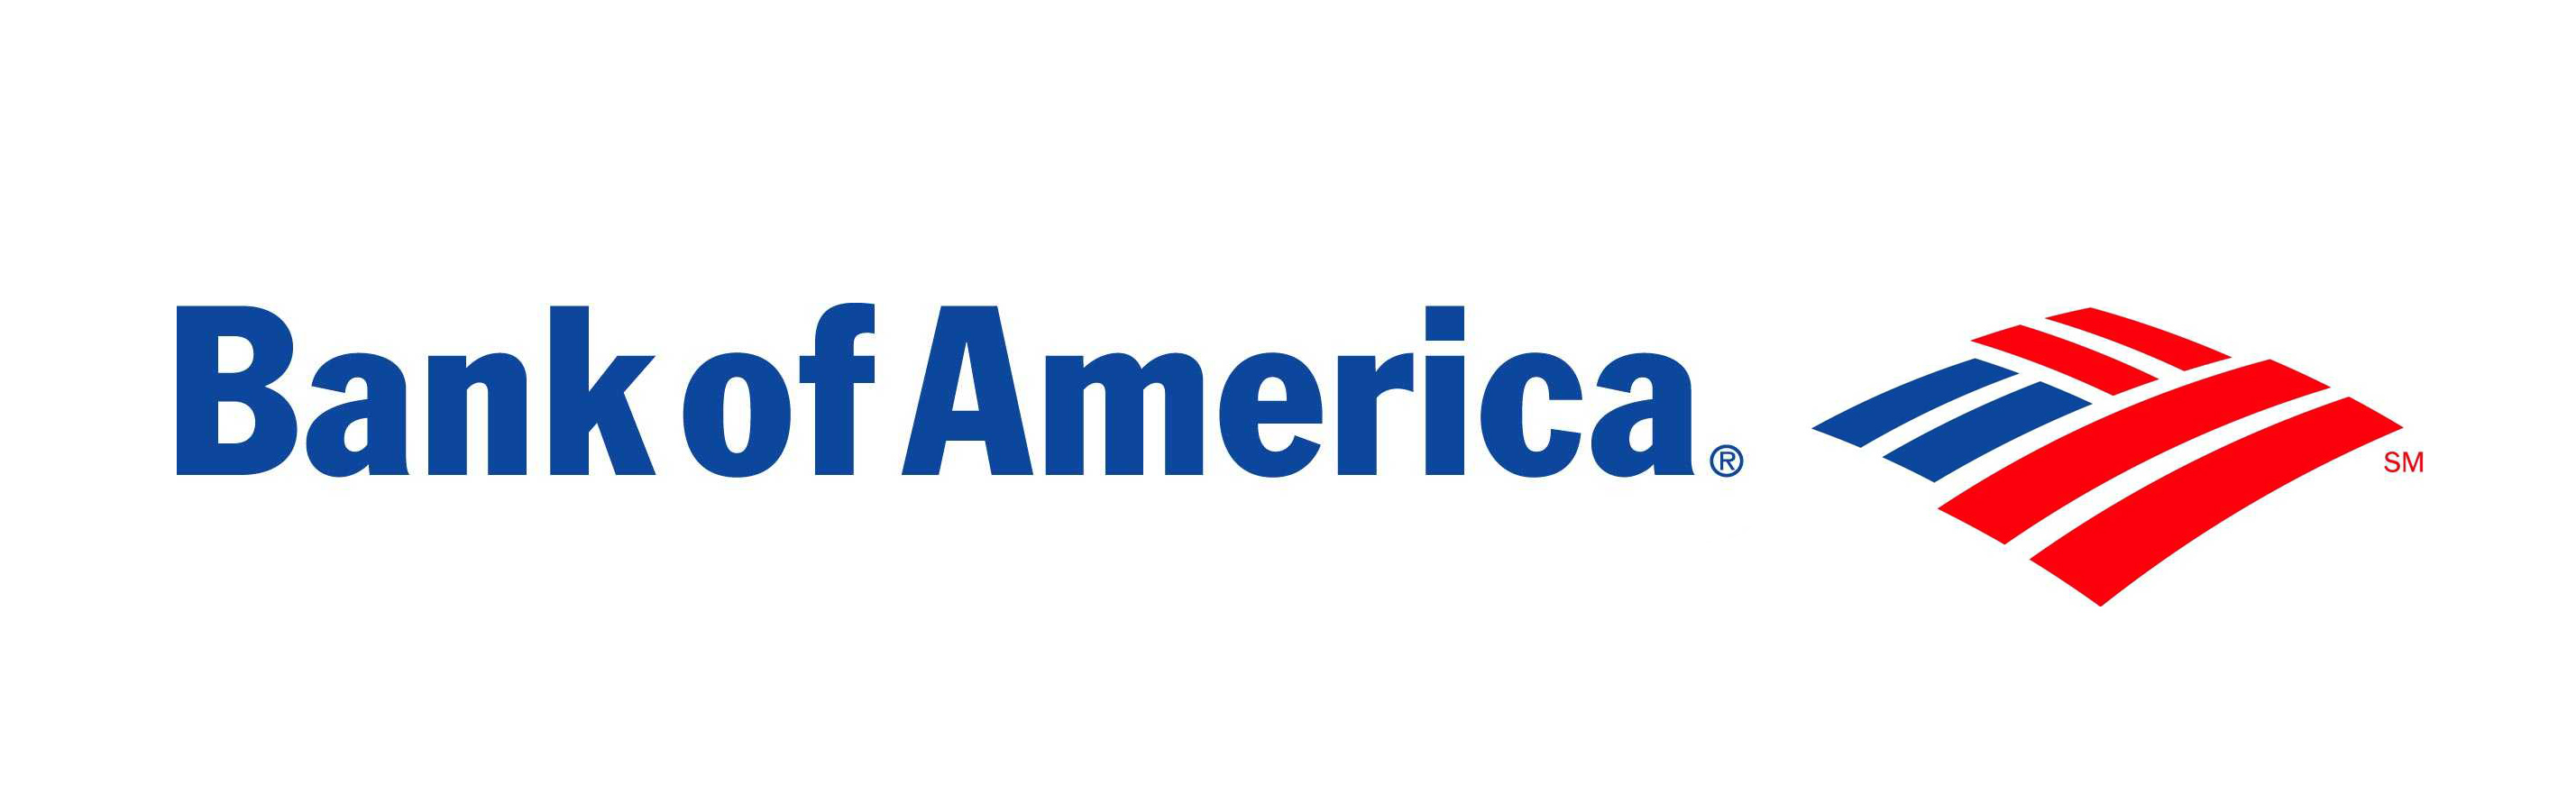 Case Study - Bank of America | Omnichannel Marketing: How Can Your Organization Benefit?